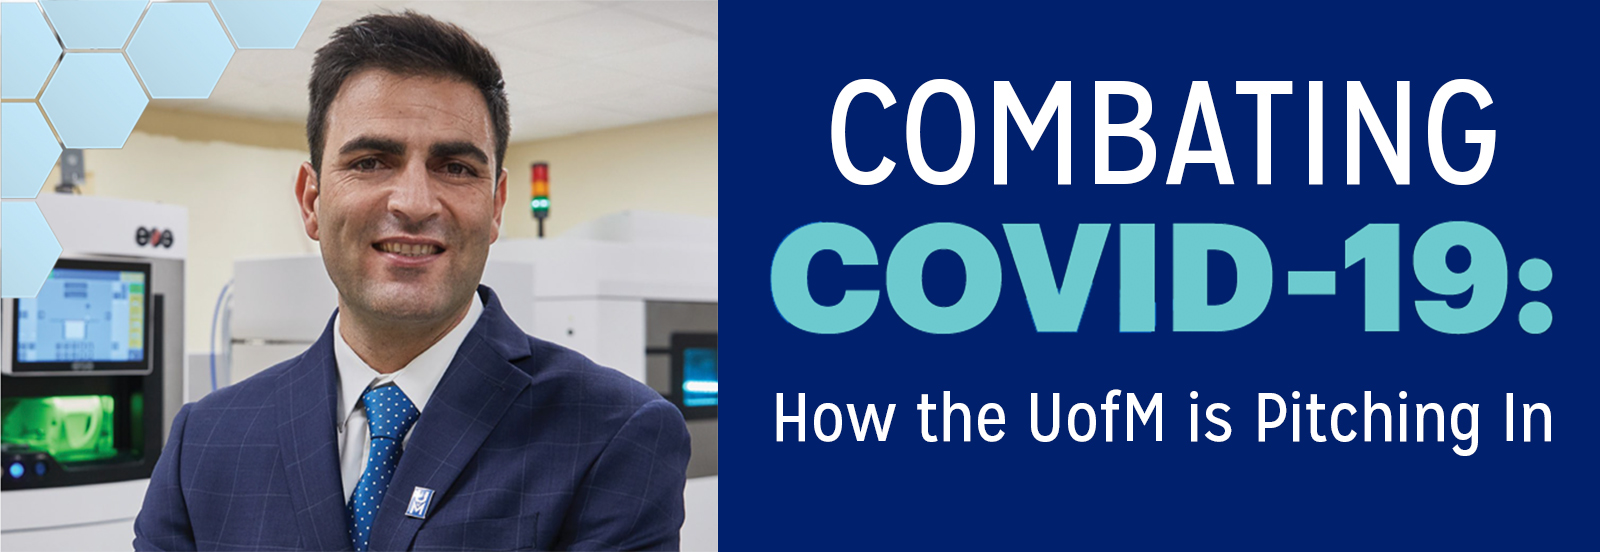 Combating COVID-19: How the UofM is Pitching In